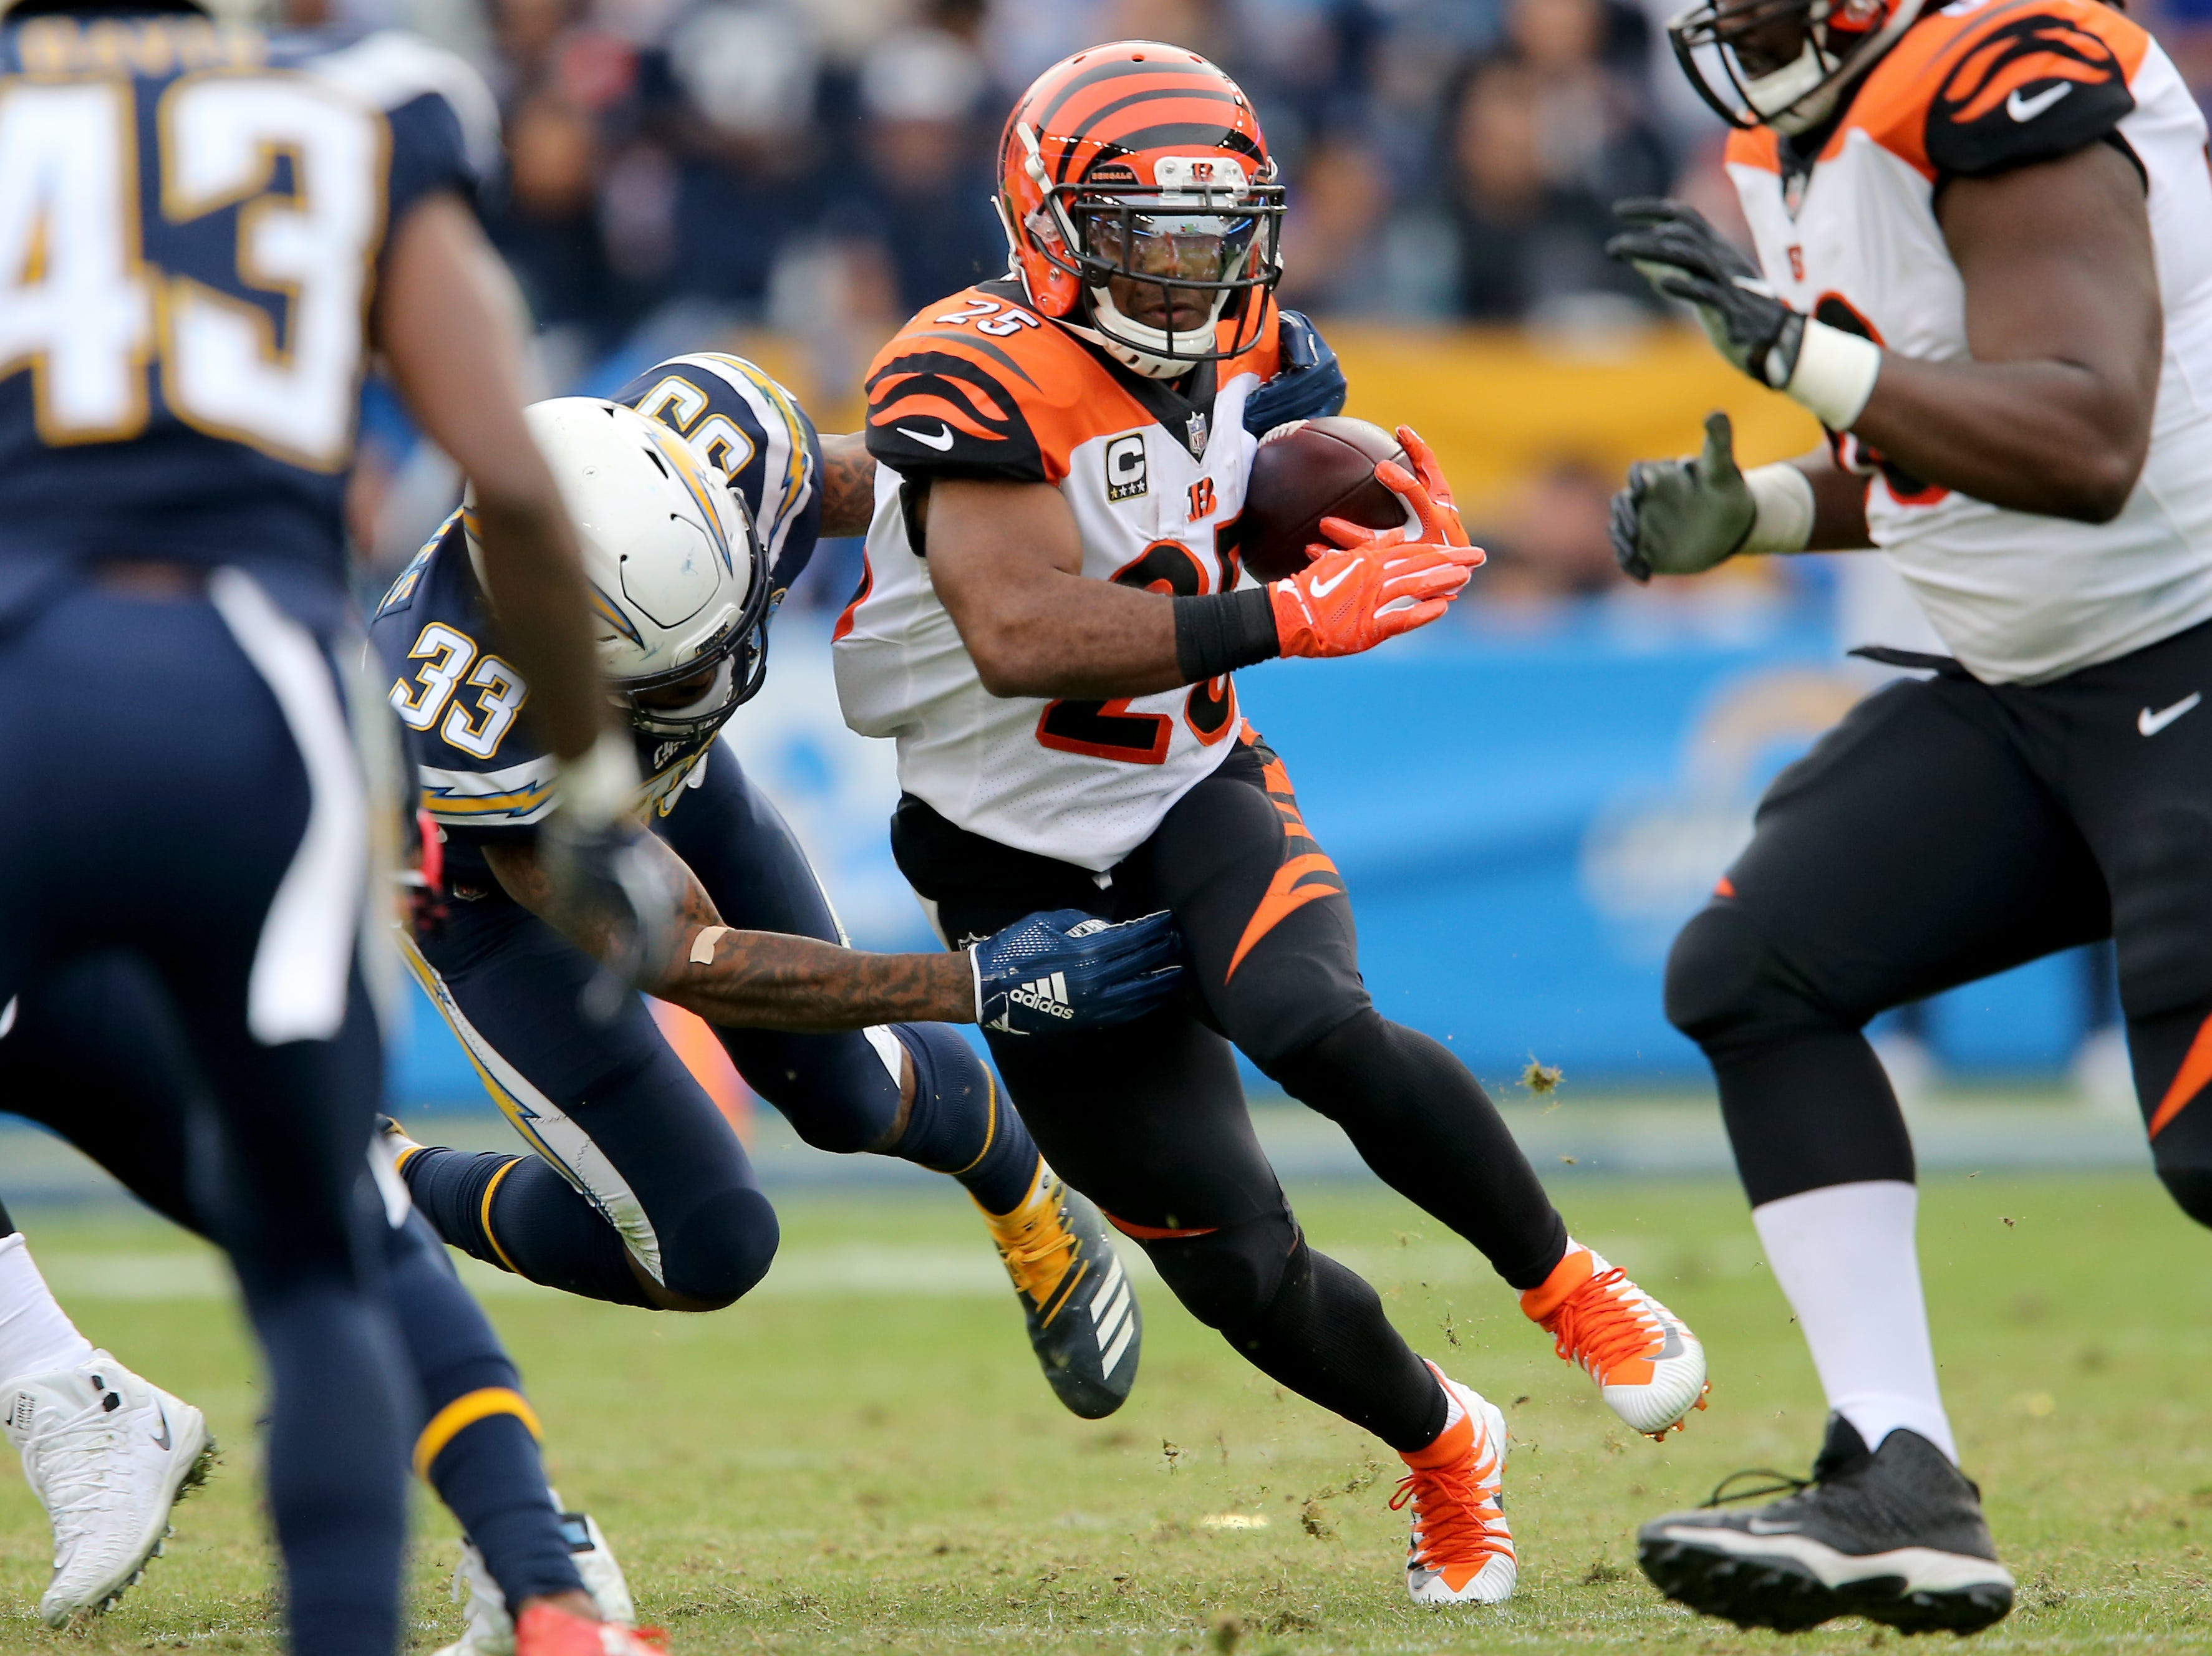 Cincinnati Bengals running back Giovani Bernard (25) carries the ball in the third quarter of a Week 14 NFL football game as Los Angeles Chargers free safety Derwin James (33) defends, Sunday, Dec. 9, 2018, at StubHub Center in Carson, California.